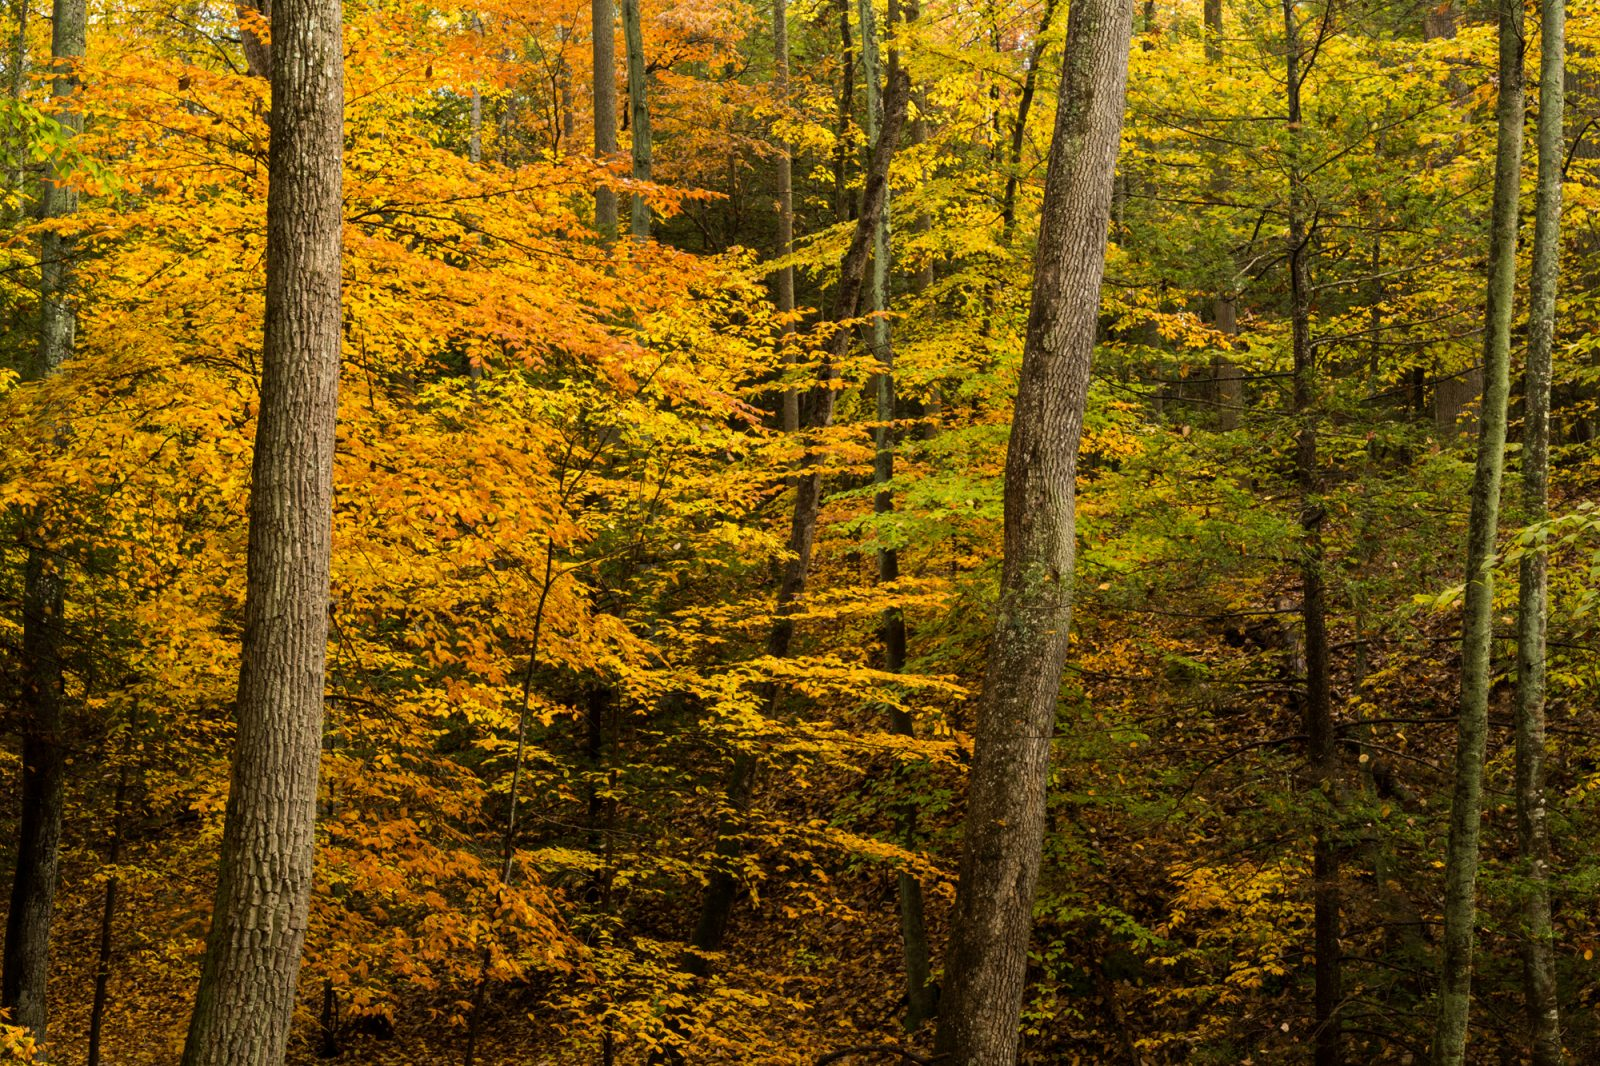 Autumn Color of the Forest